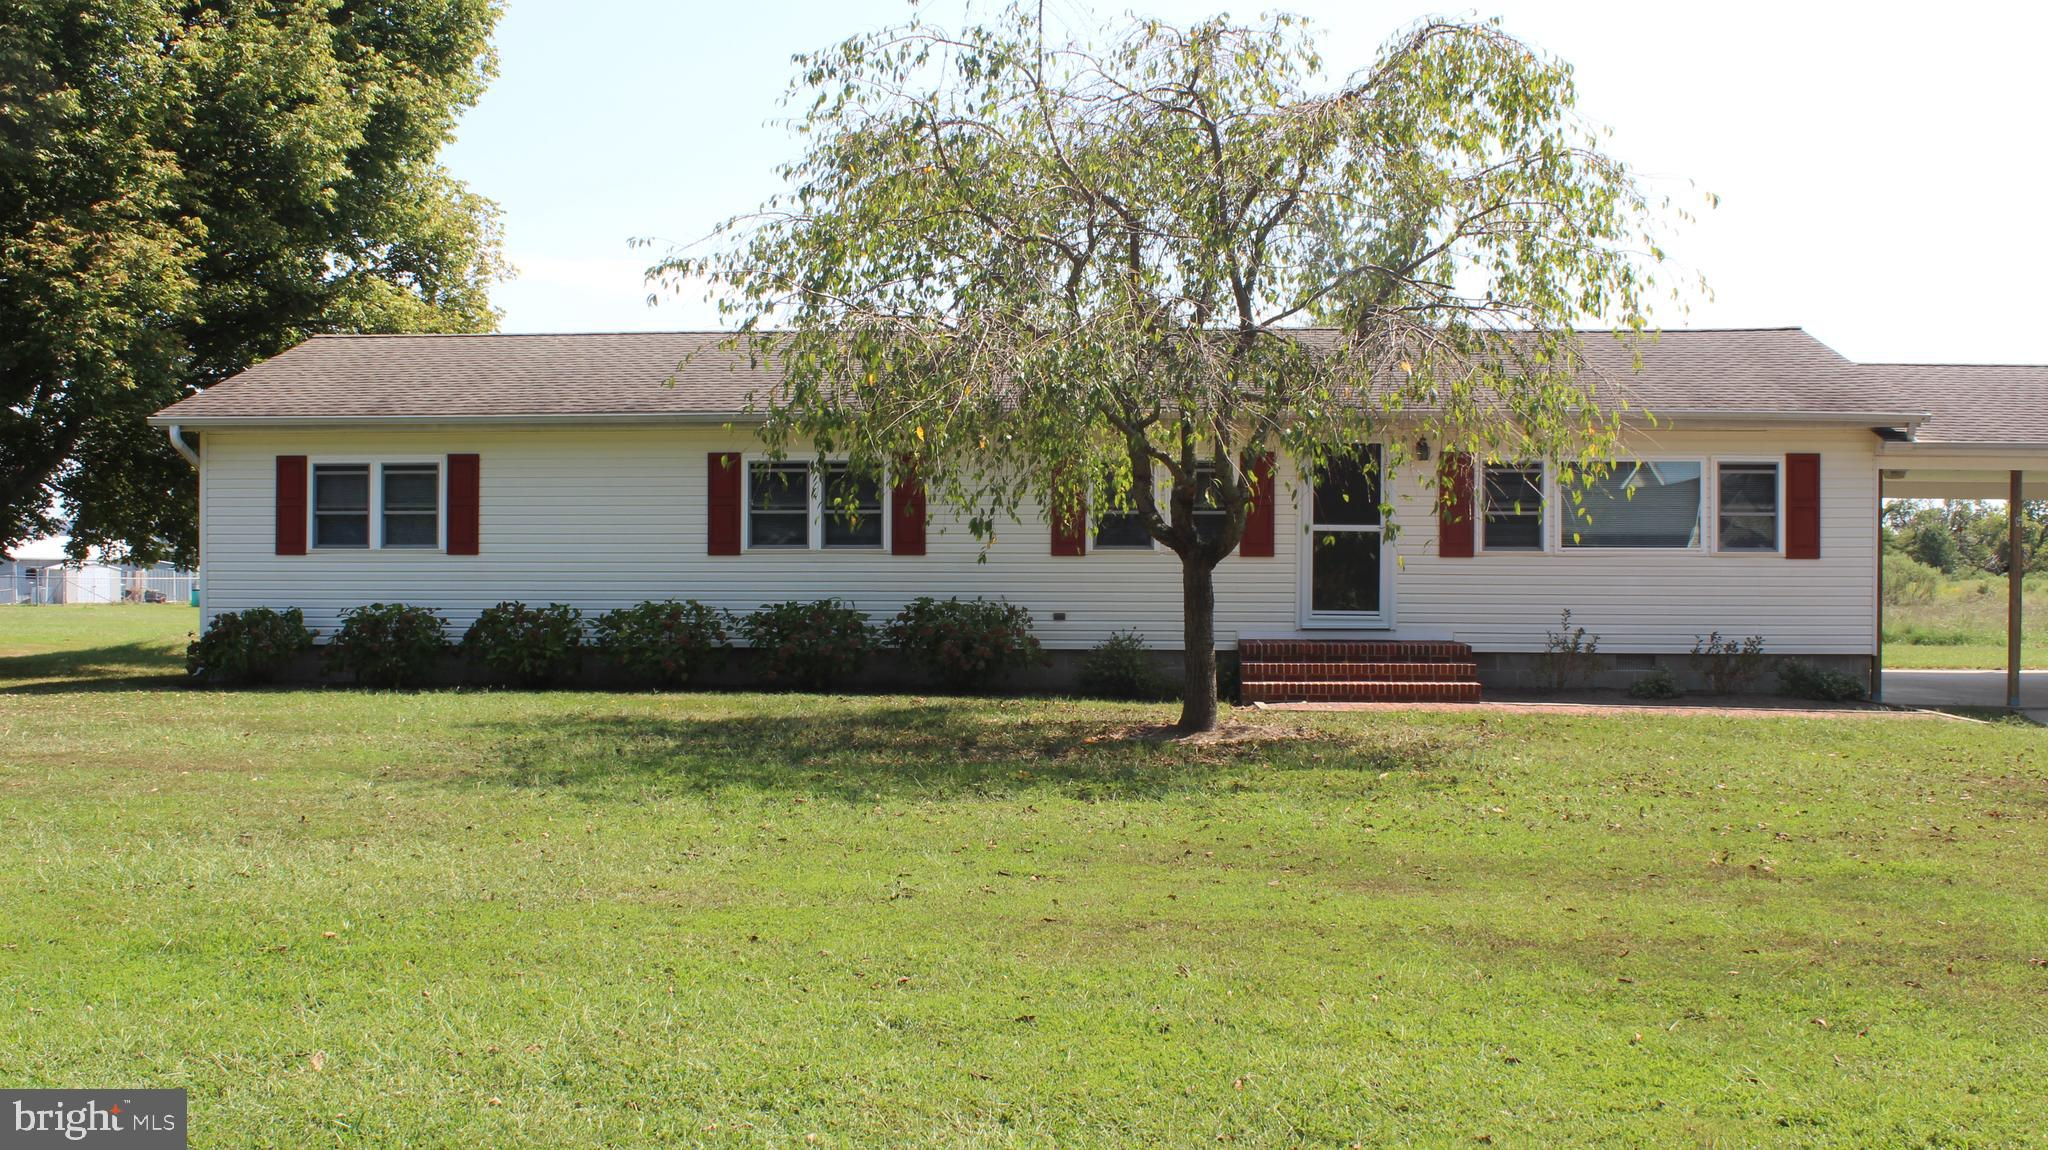 1527 DEEP POINT ROAD, WOOLFORD, MD 21677